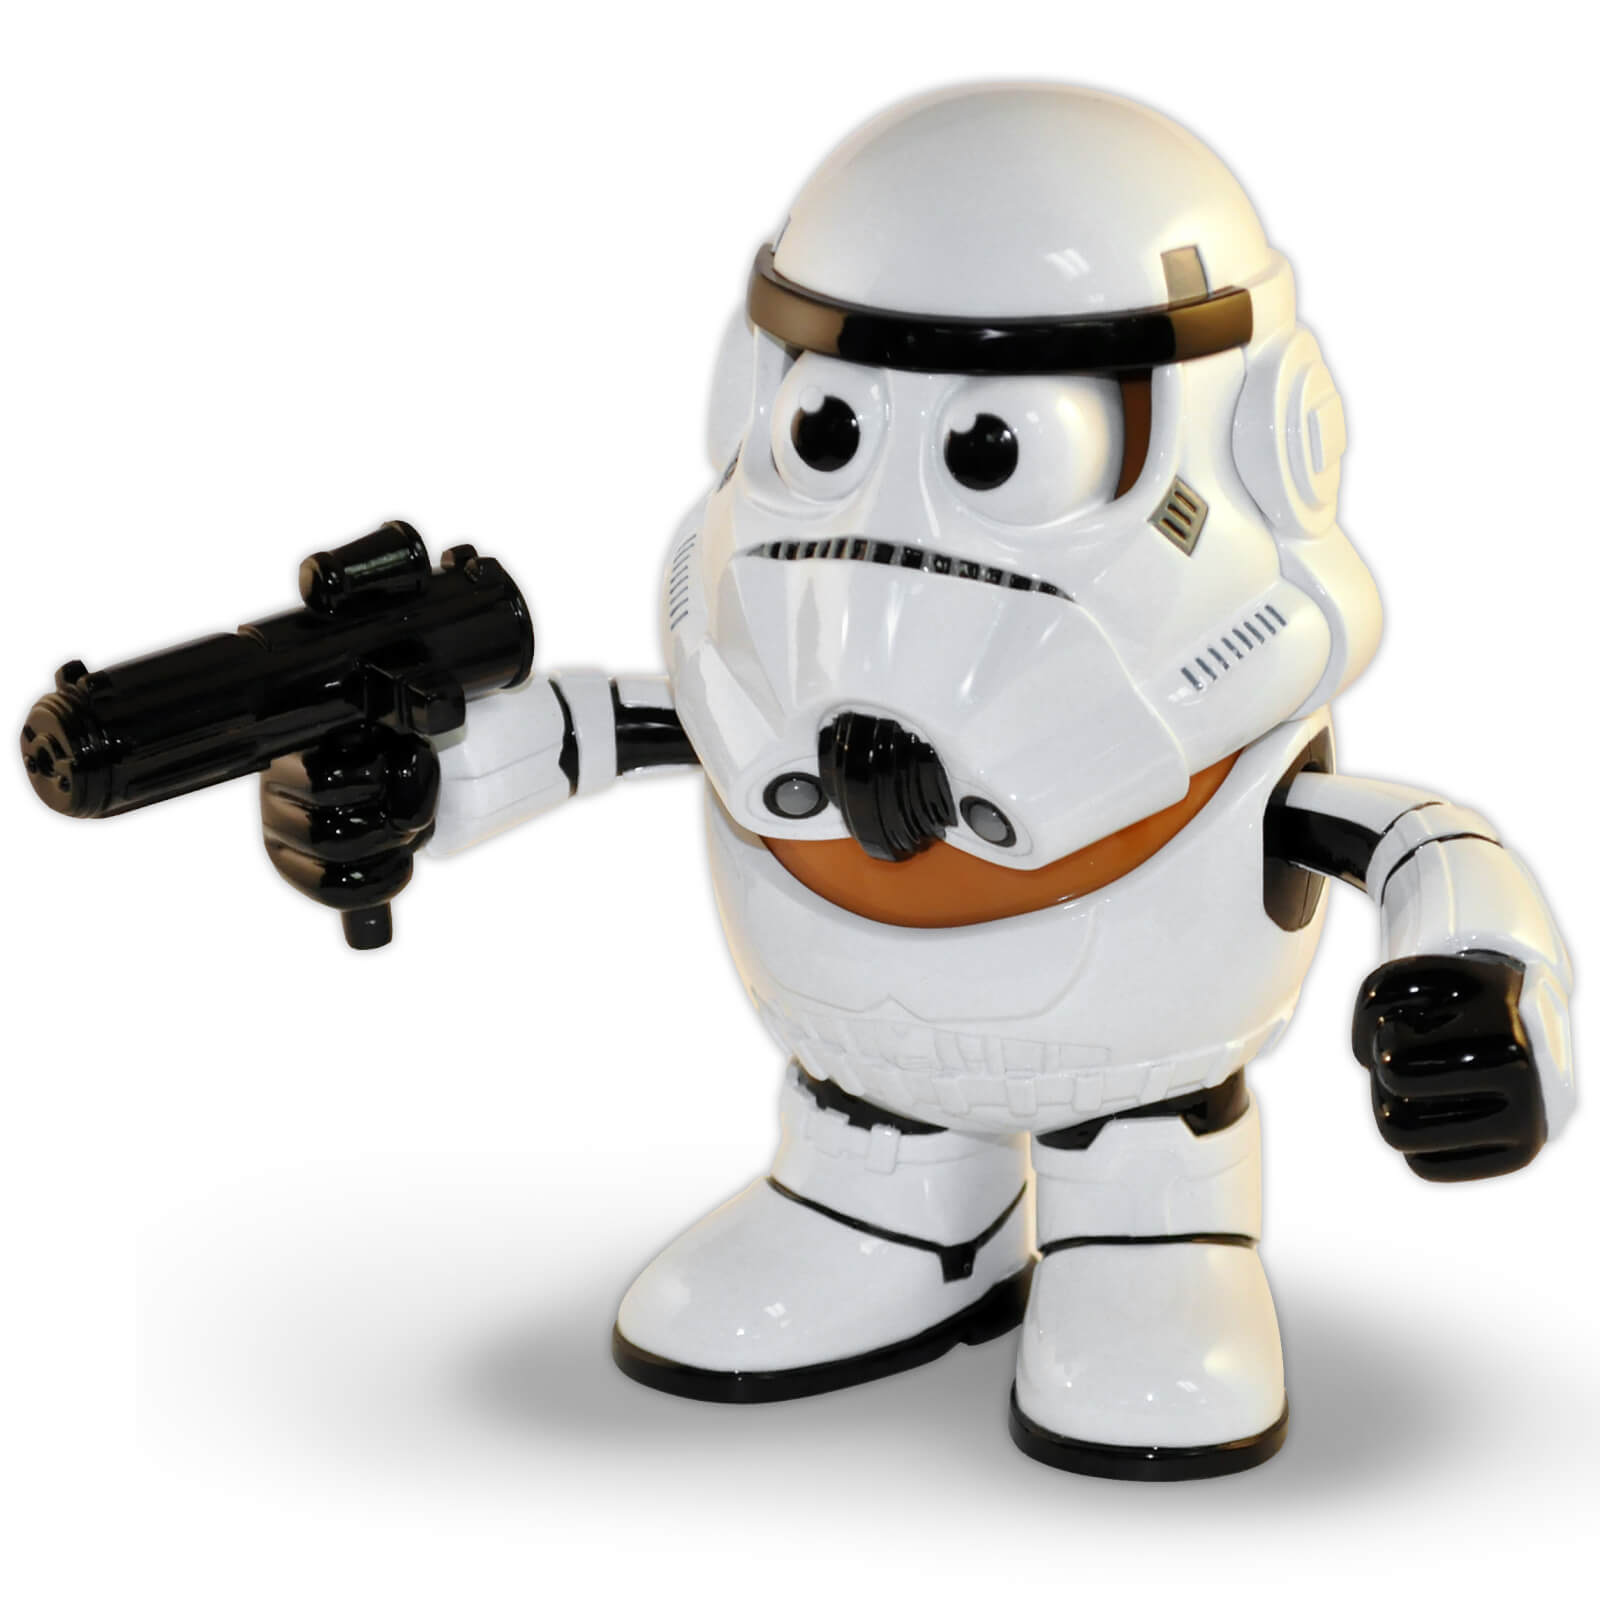 Star Wars Mr. Potato Head Stormtrooper Action Figure